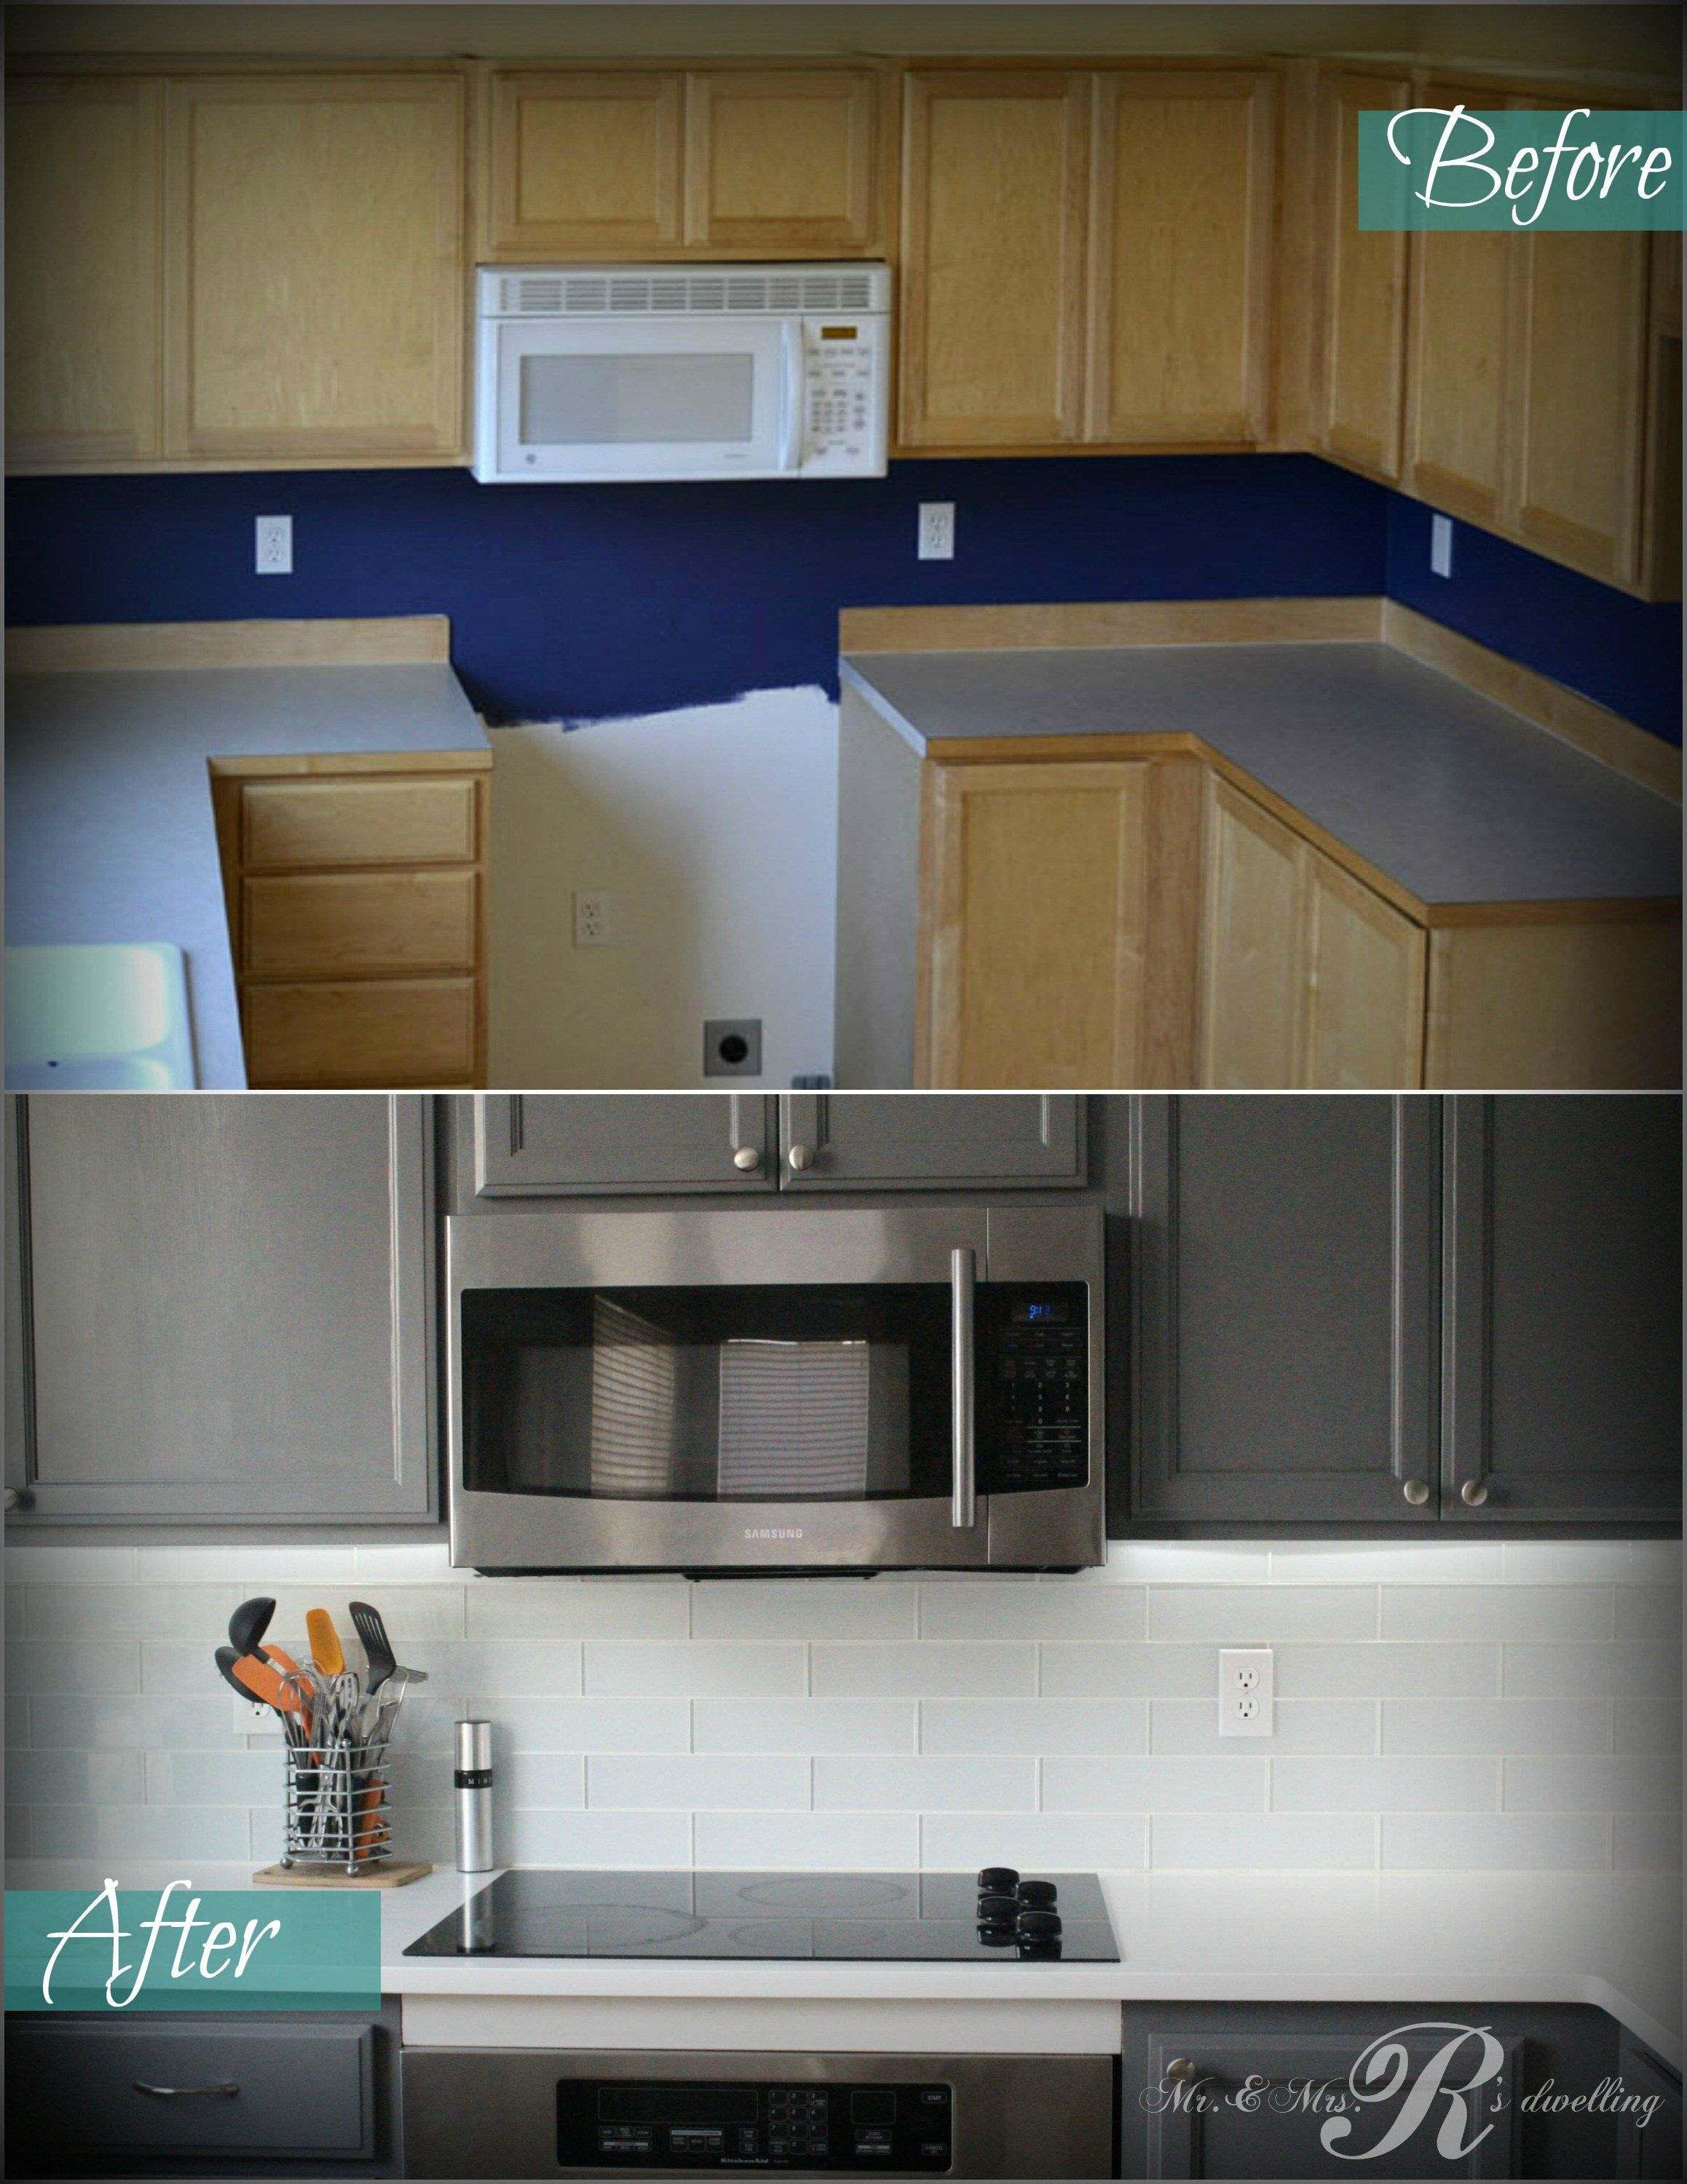 x doors of awesome kitchen redo inc amp cabinet cabinets size full remodel